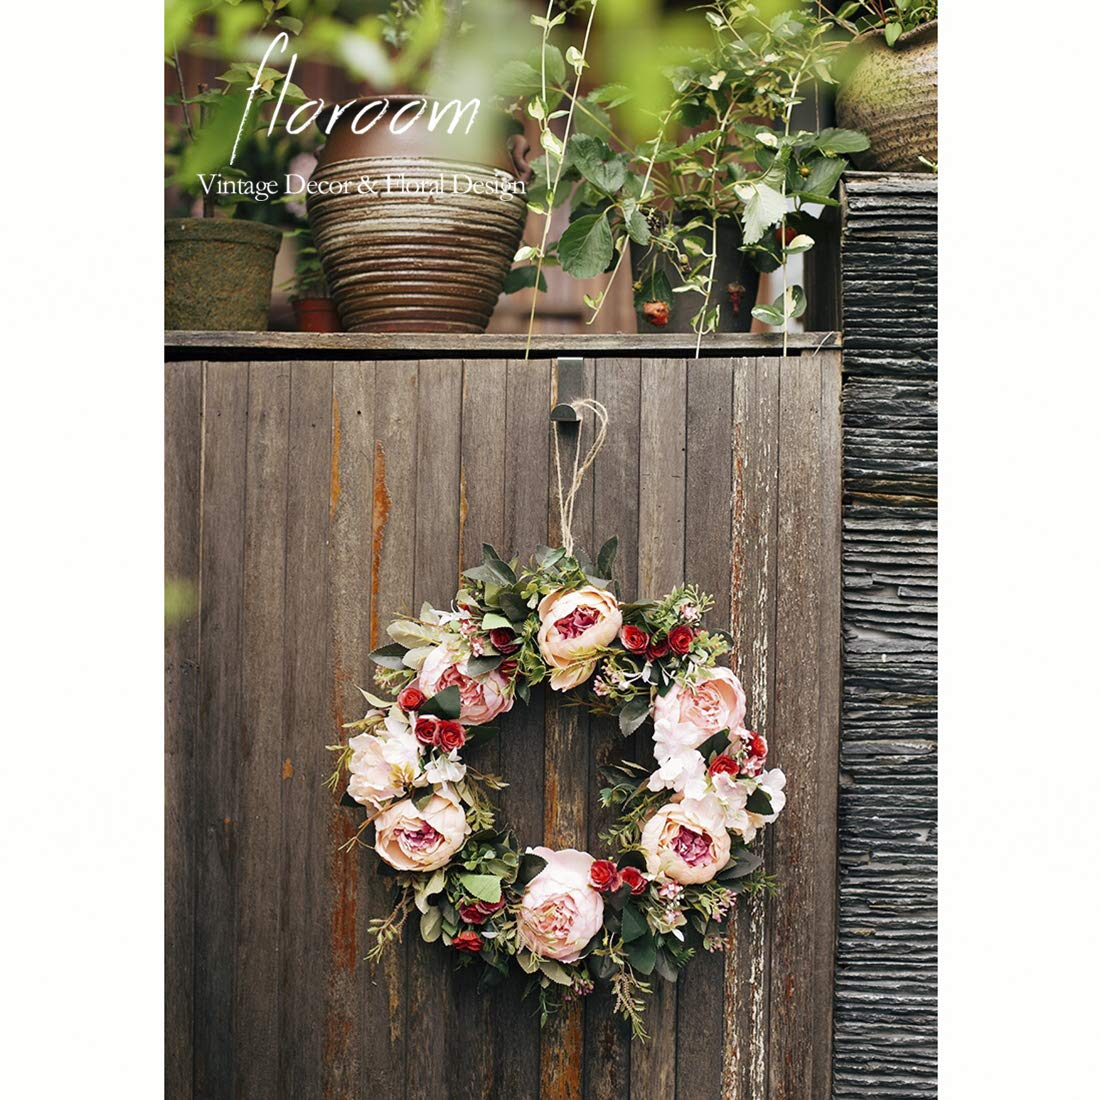 Floral Wreath, Door Wreath, Artificial Peony Wreath for Front Door 15''-16'', Wall Decor by floroom